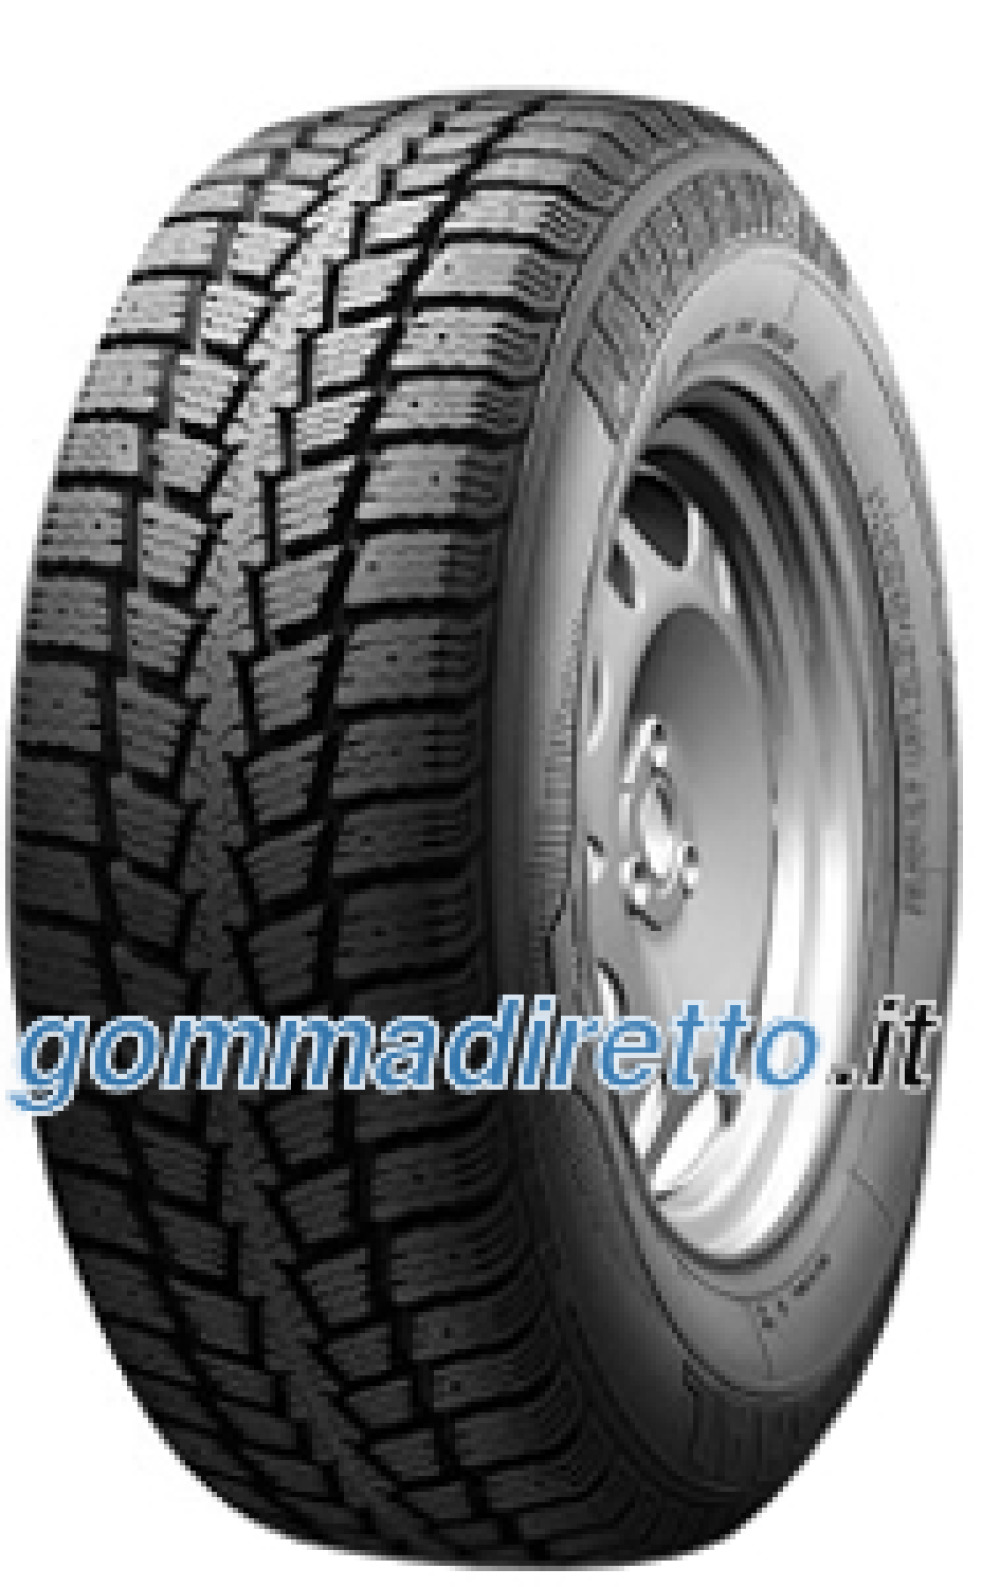 Image of Marshal Power Grip KC11 ( 215/65 R16C 109/107R, pneumatico chiodato )